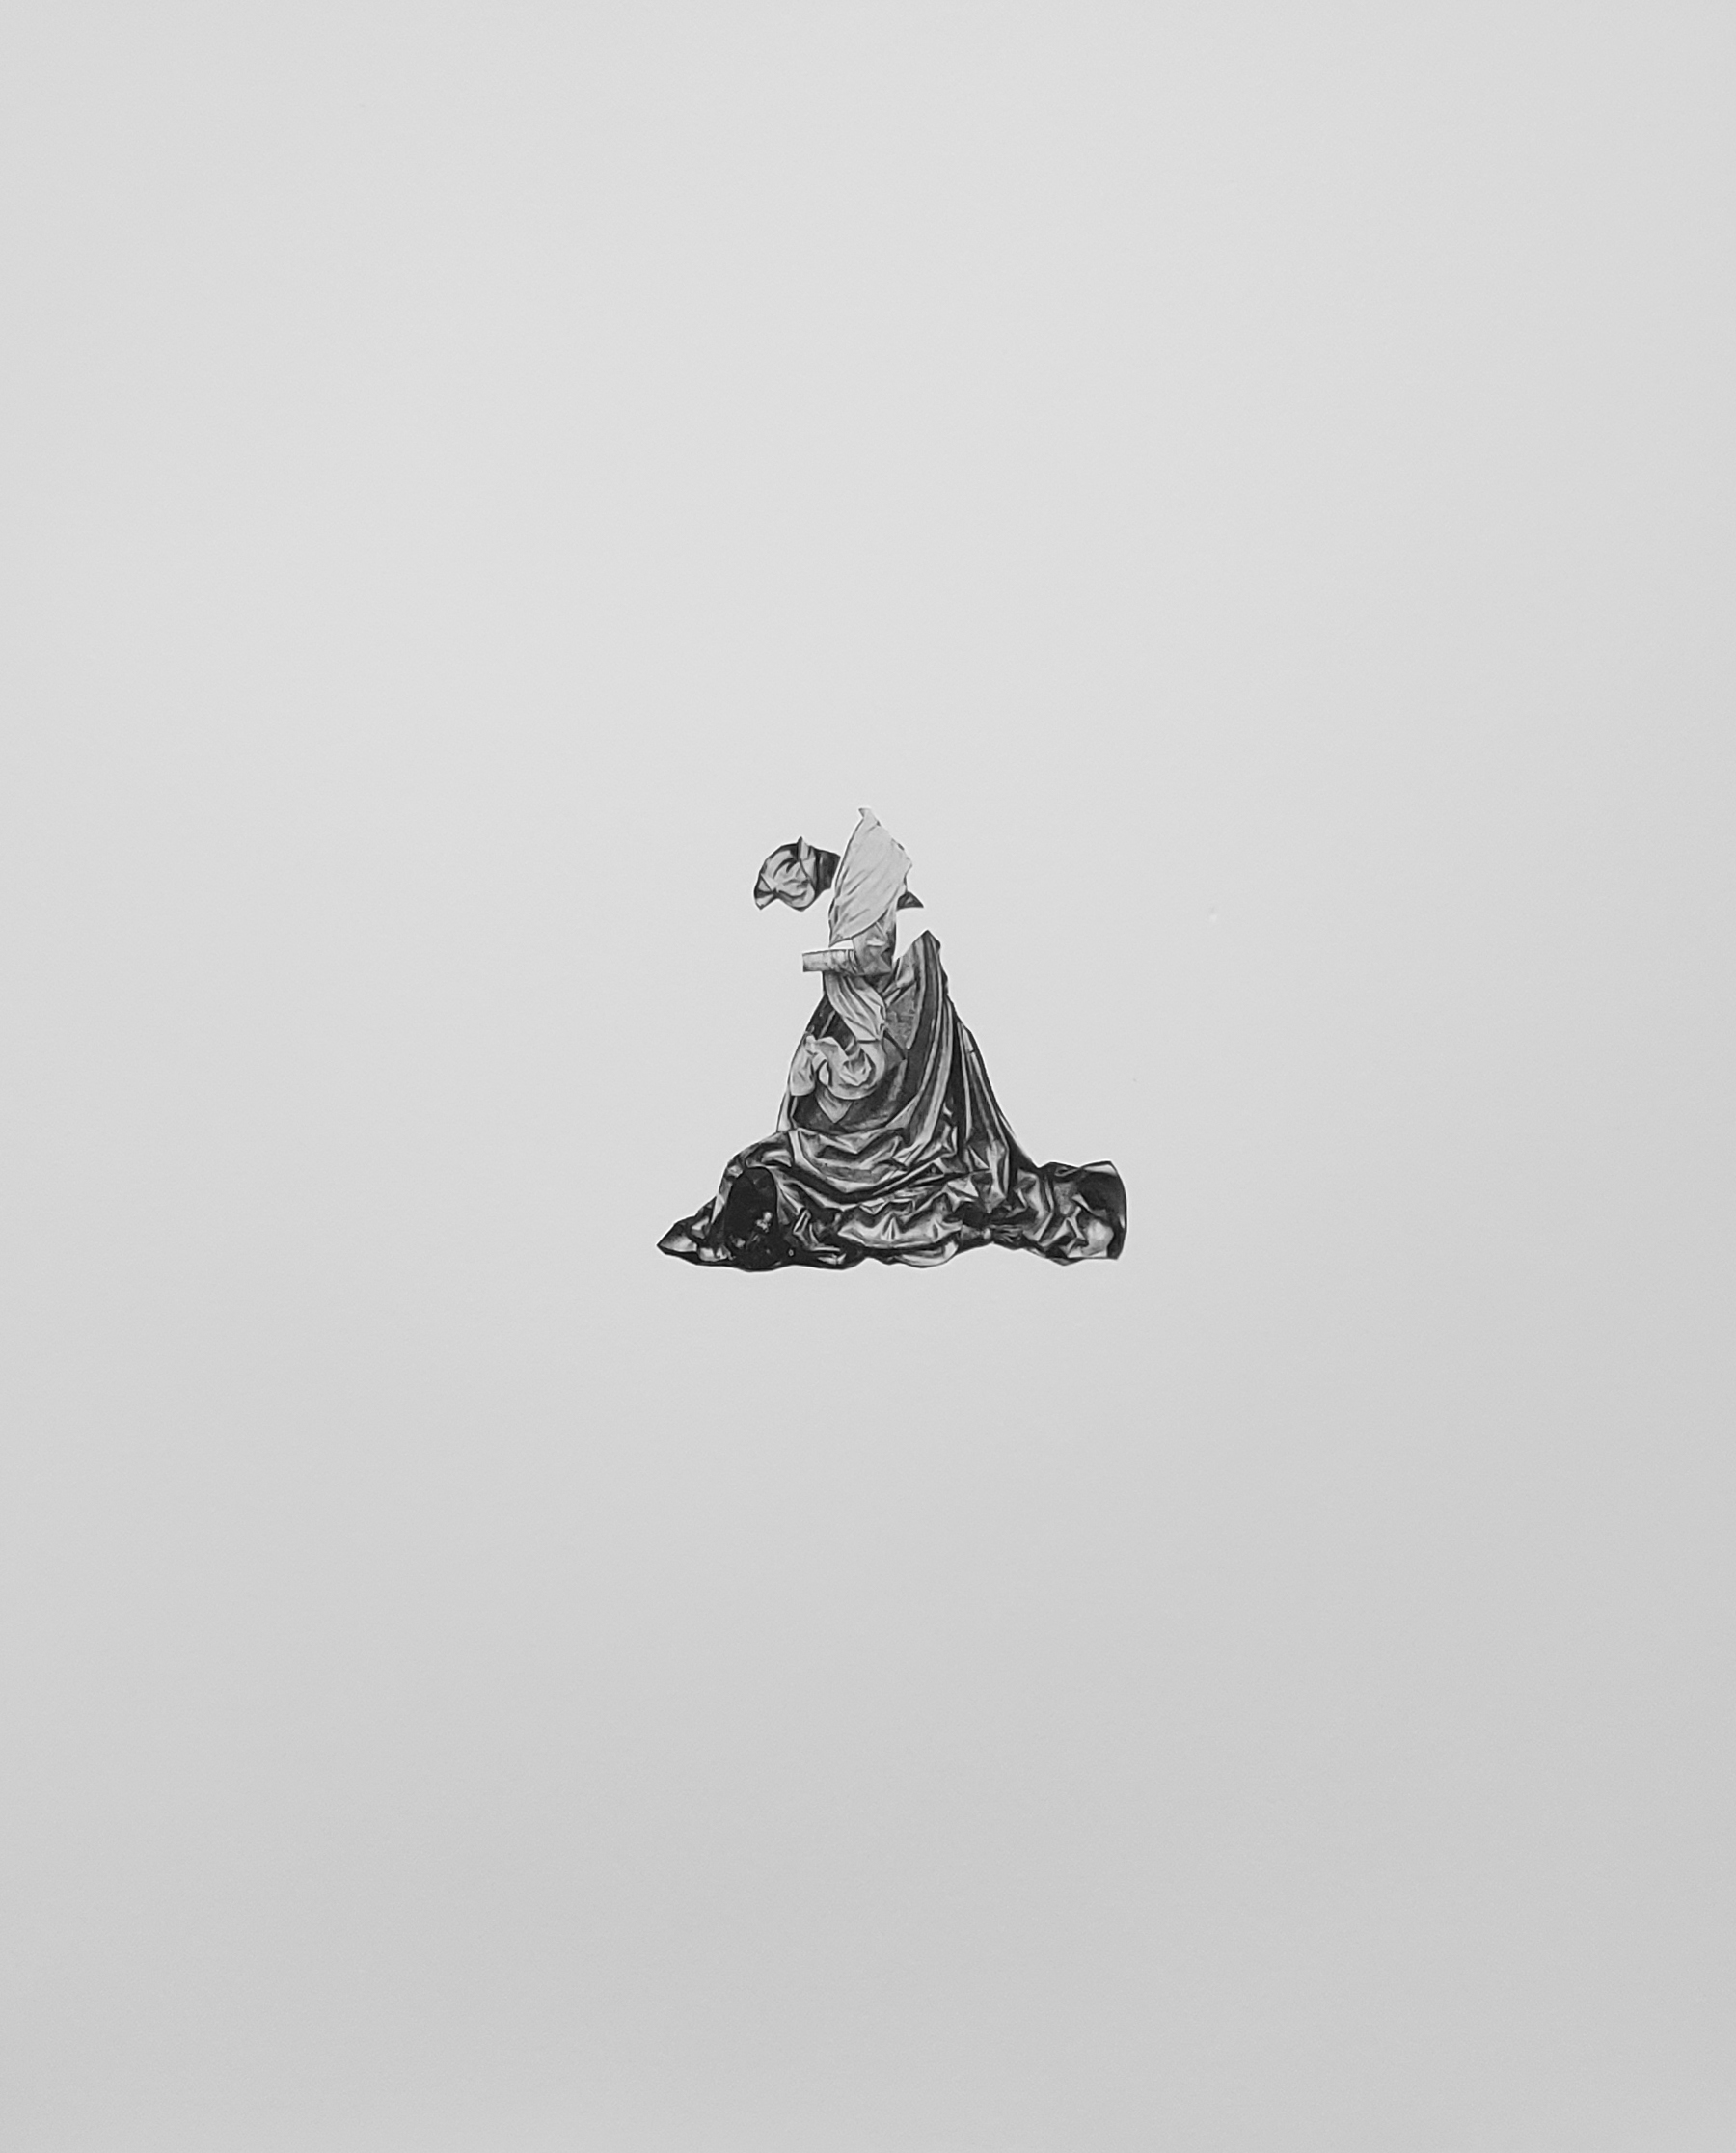 A greyscale image of a robed woman without face or hands against a light grey background